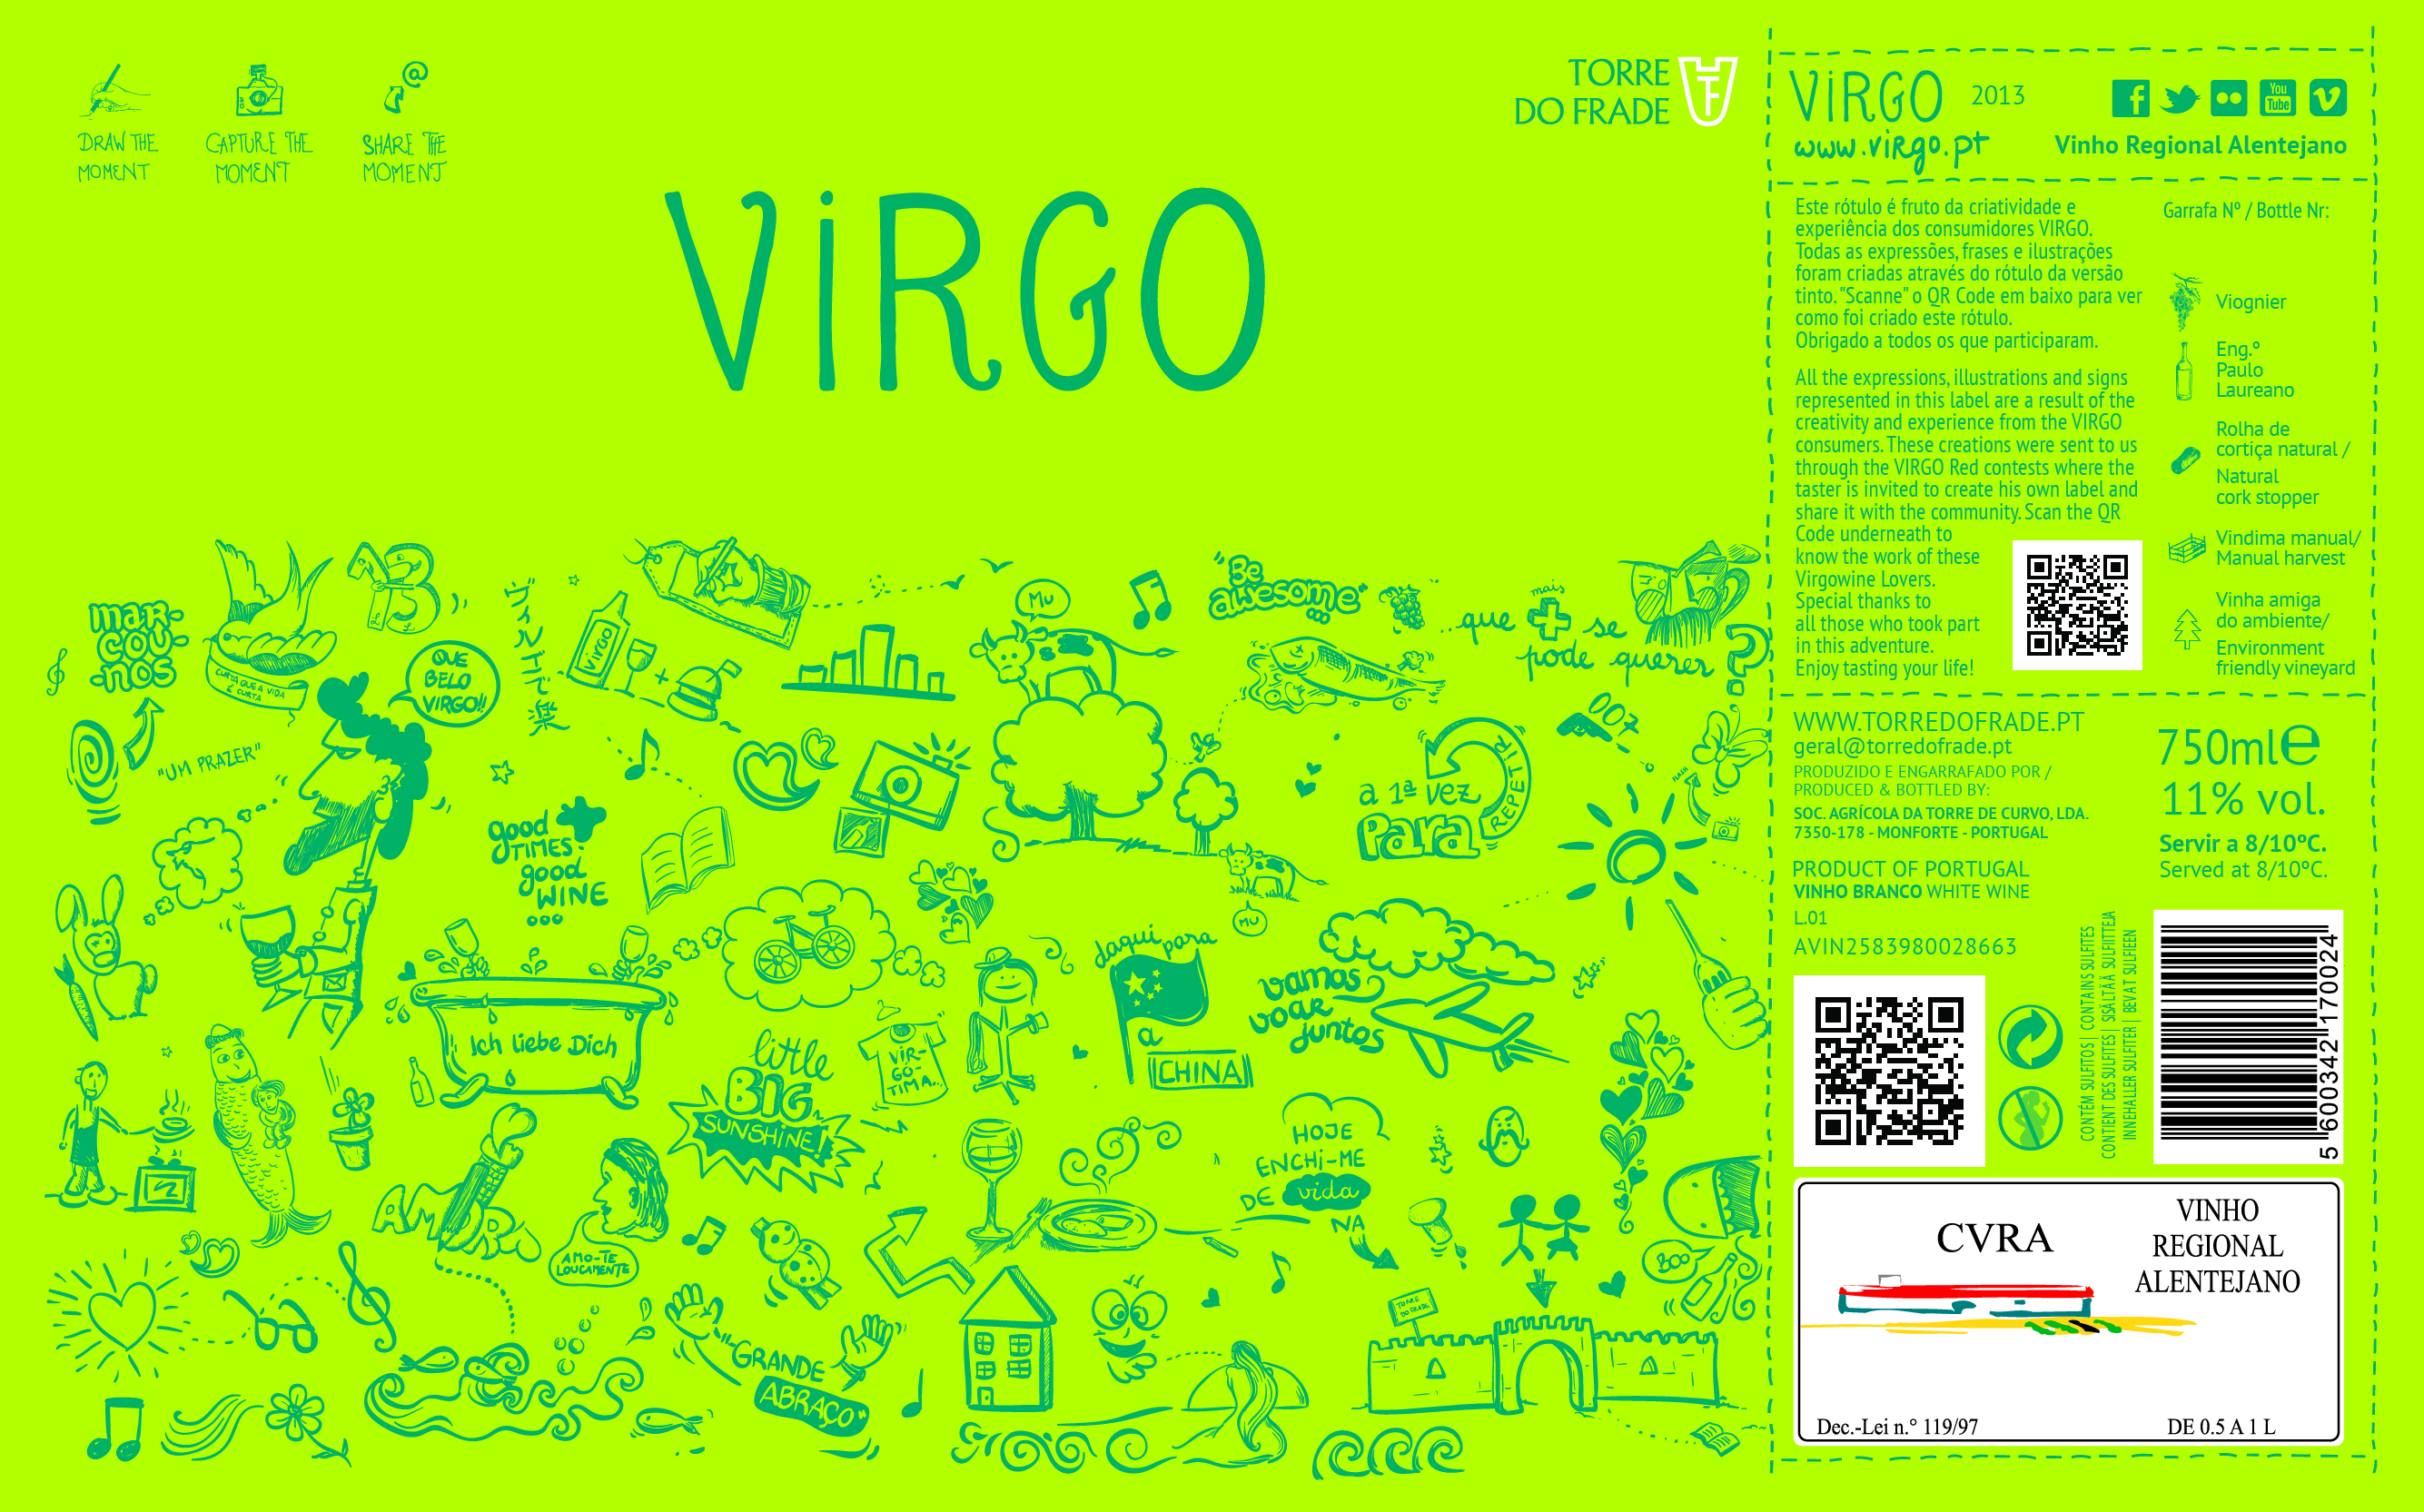 Rotulo_VIRGO_Branco_2013_Alterado_QR_Antigo-01